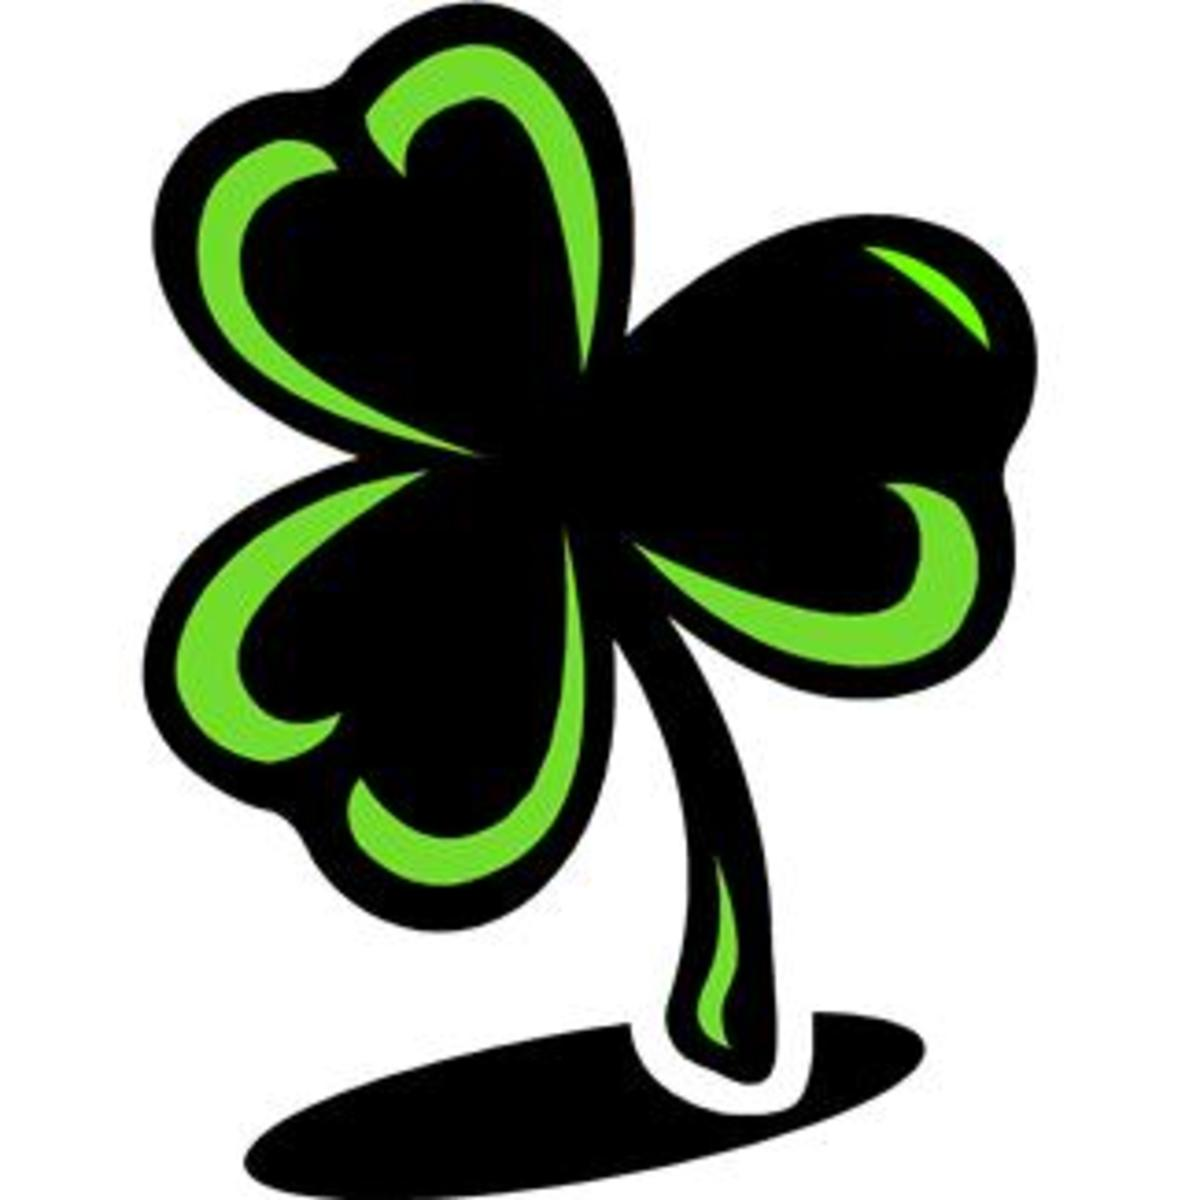 Green and Black Shamrock Image